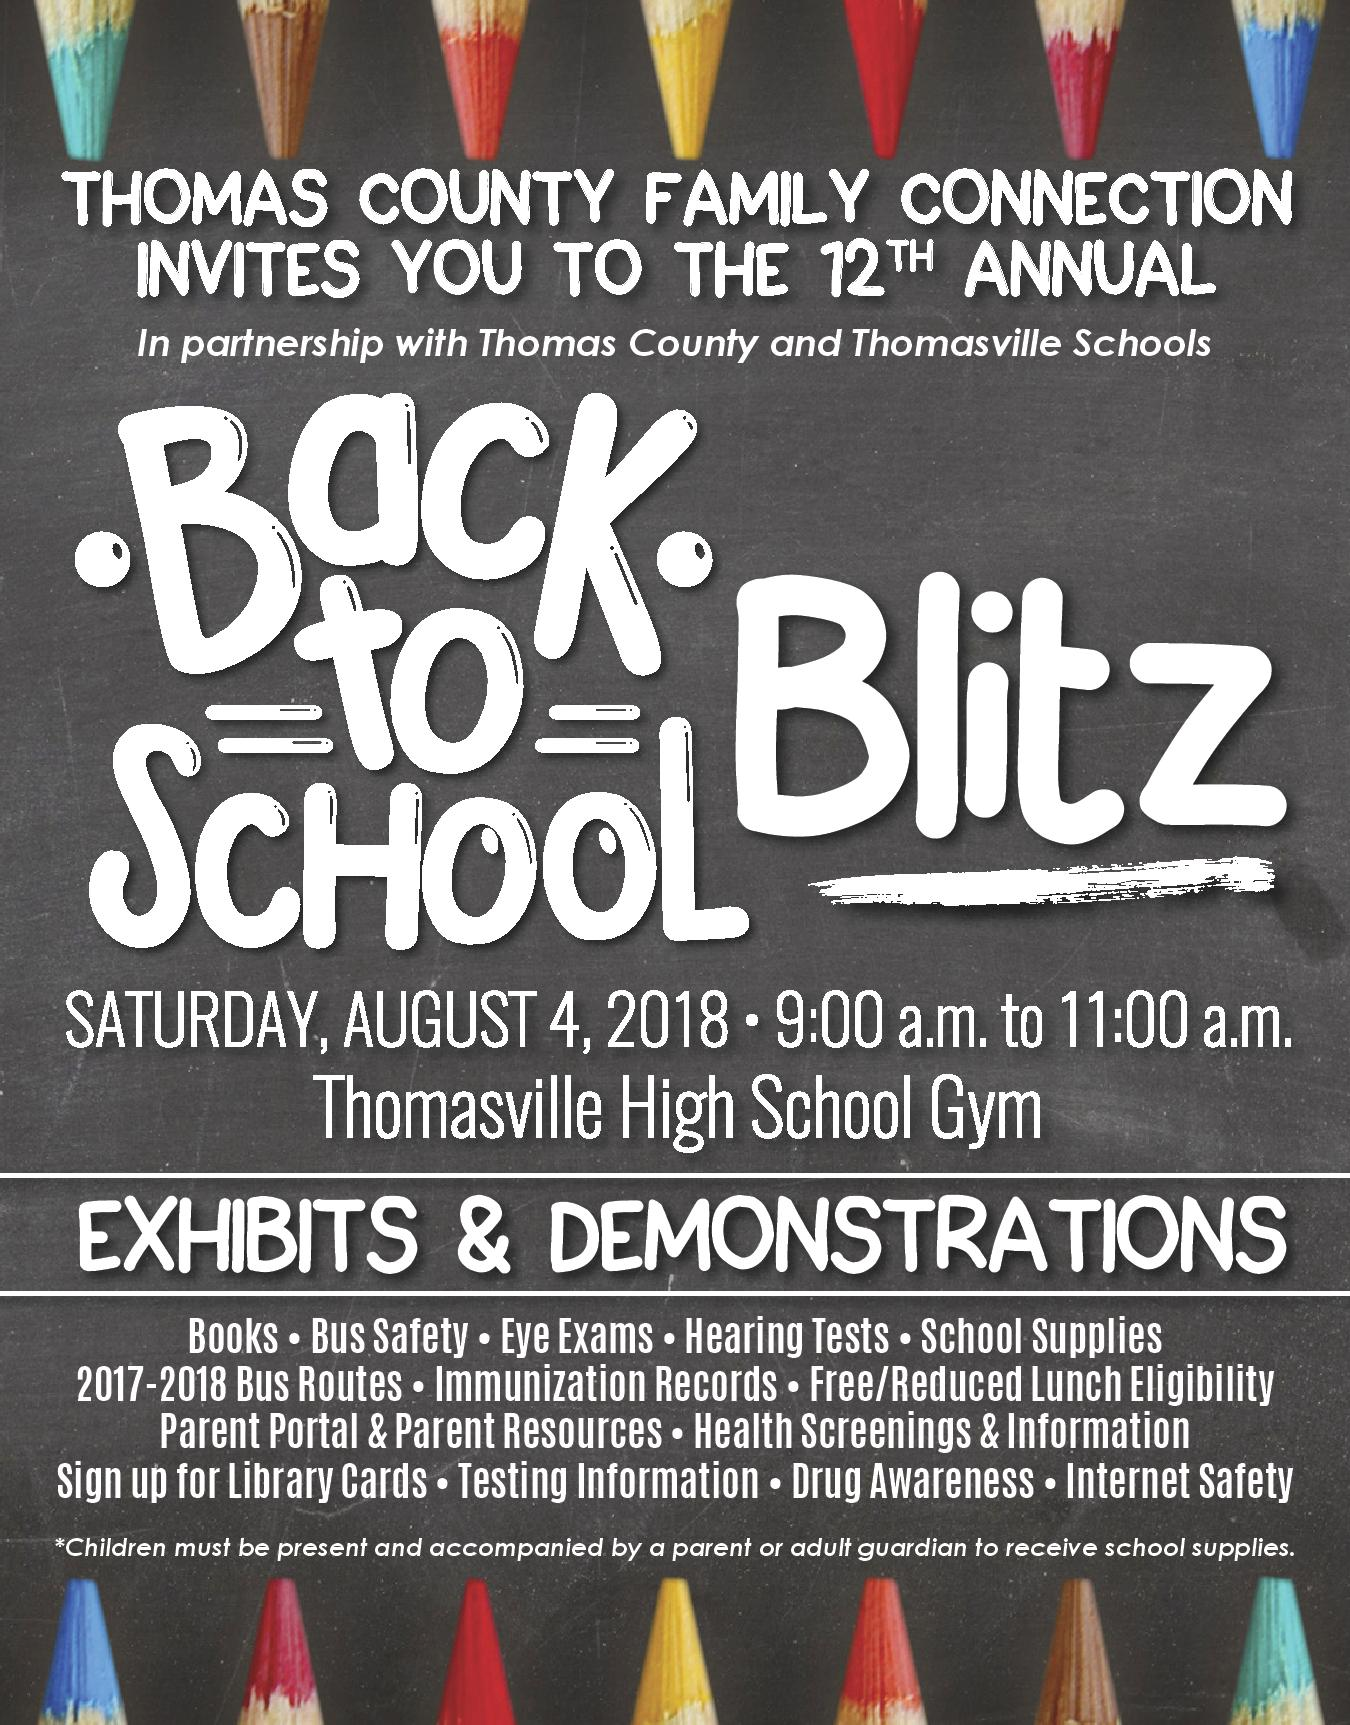 Back to School Blitz - August 4, 2018 at Thomasville High School from 9:00-11:00 AM